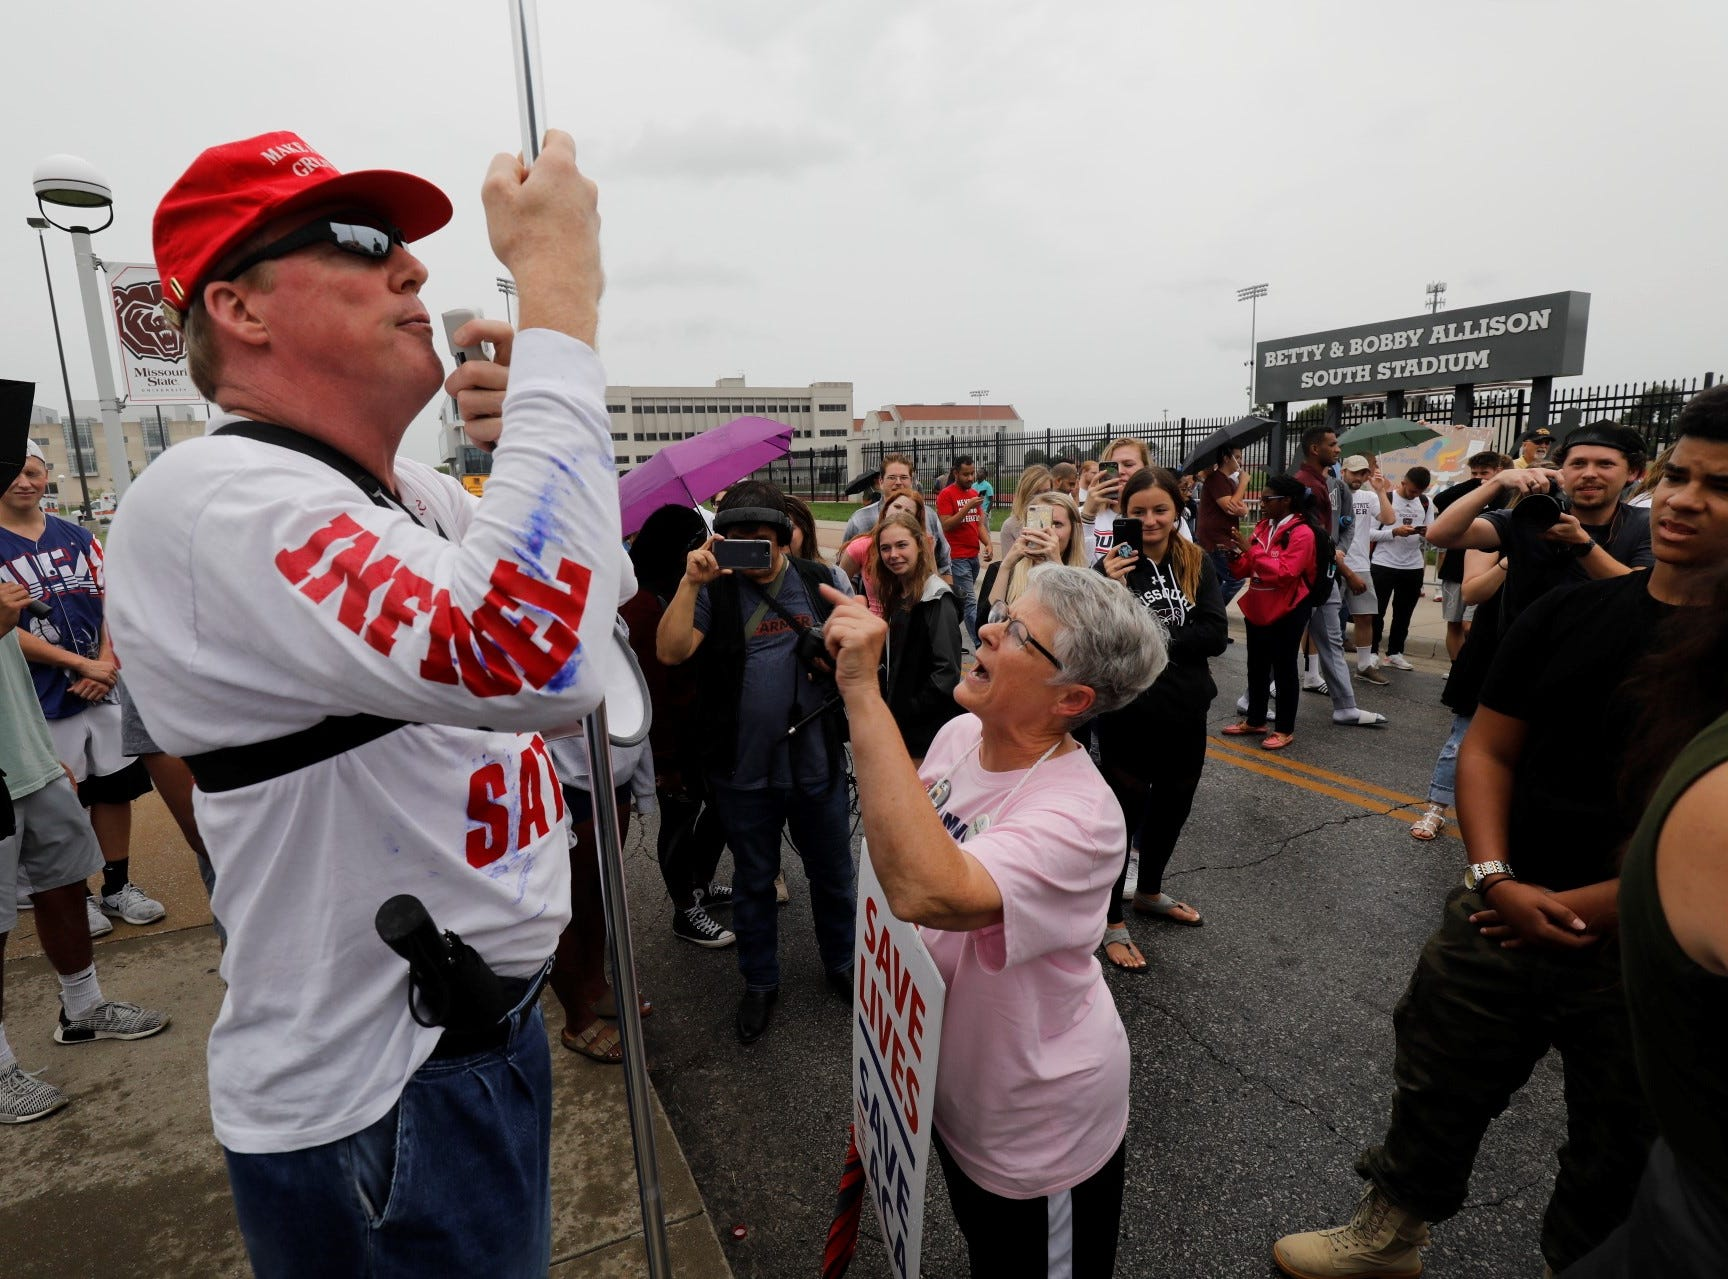 A vocal Trump supporter, left, hurled insults at the Trump protesters and incites their anger Friday, Sept. 21, 2018 outside JQH Arena in Springfield.